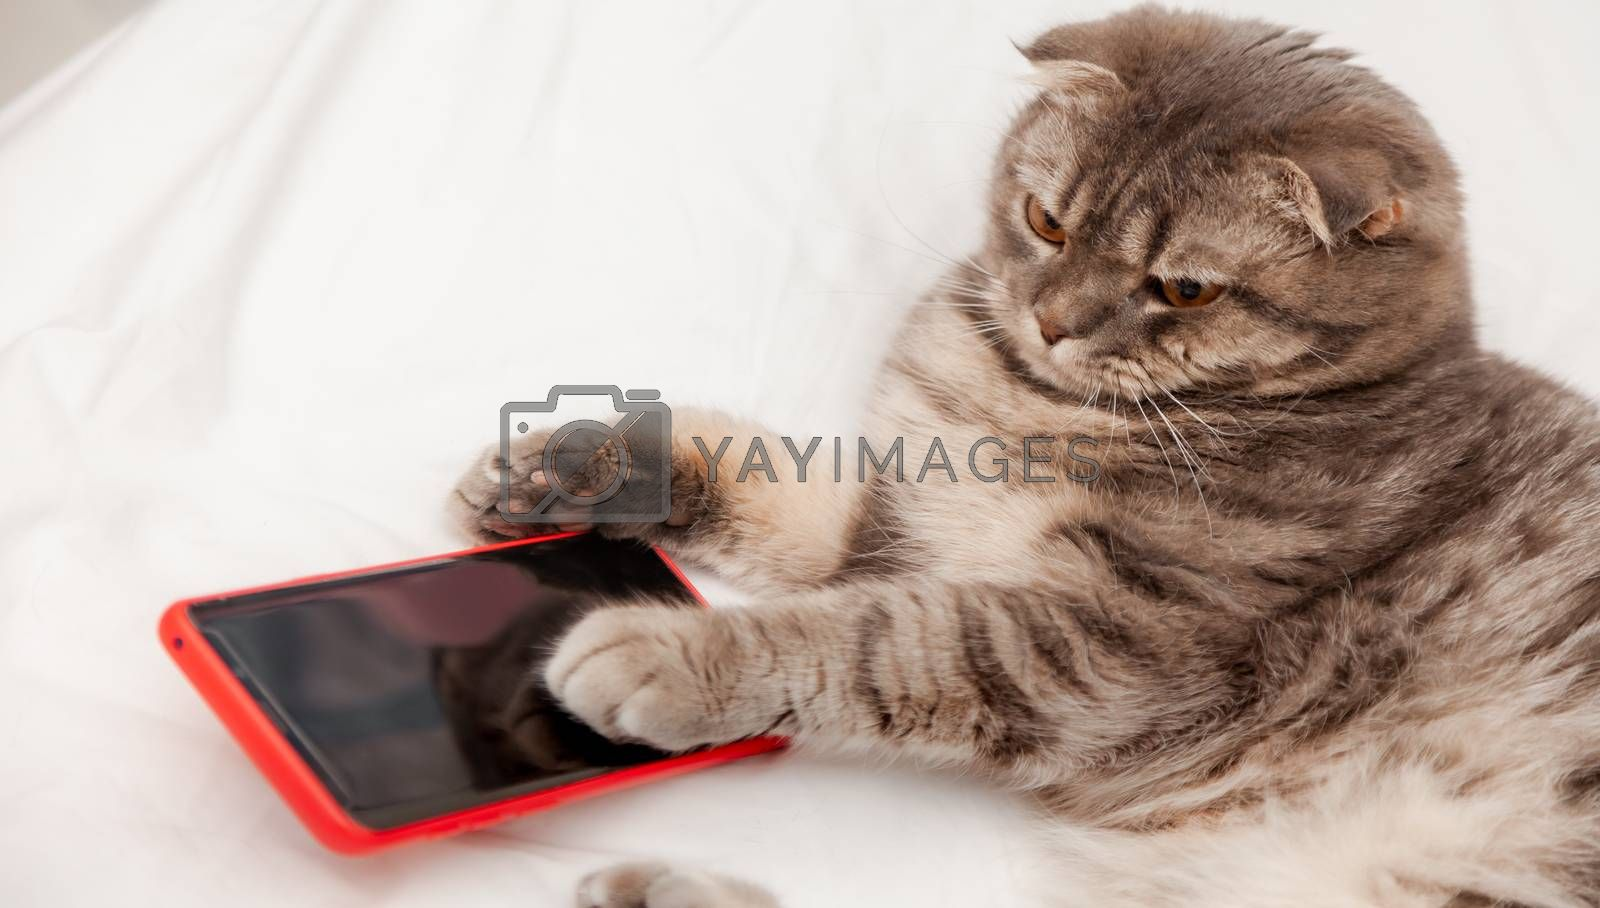 Little Cat cute with cell telephone or smartphone for Shopping Online on the Internet . scottish fold Cat ginger kitten pet on Social Network during quarantine to Virus Outbreak COVID-19.